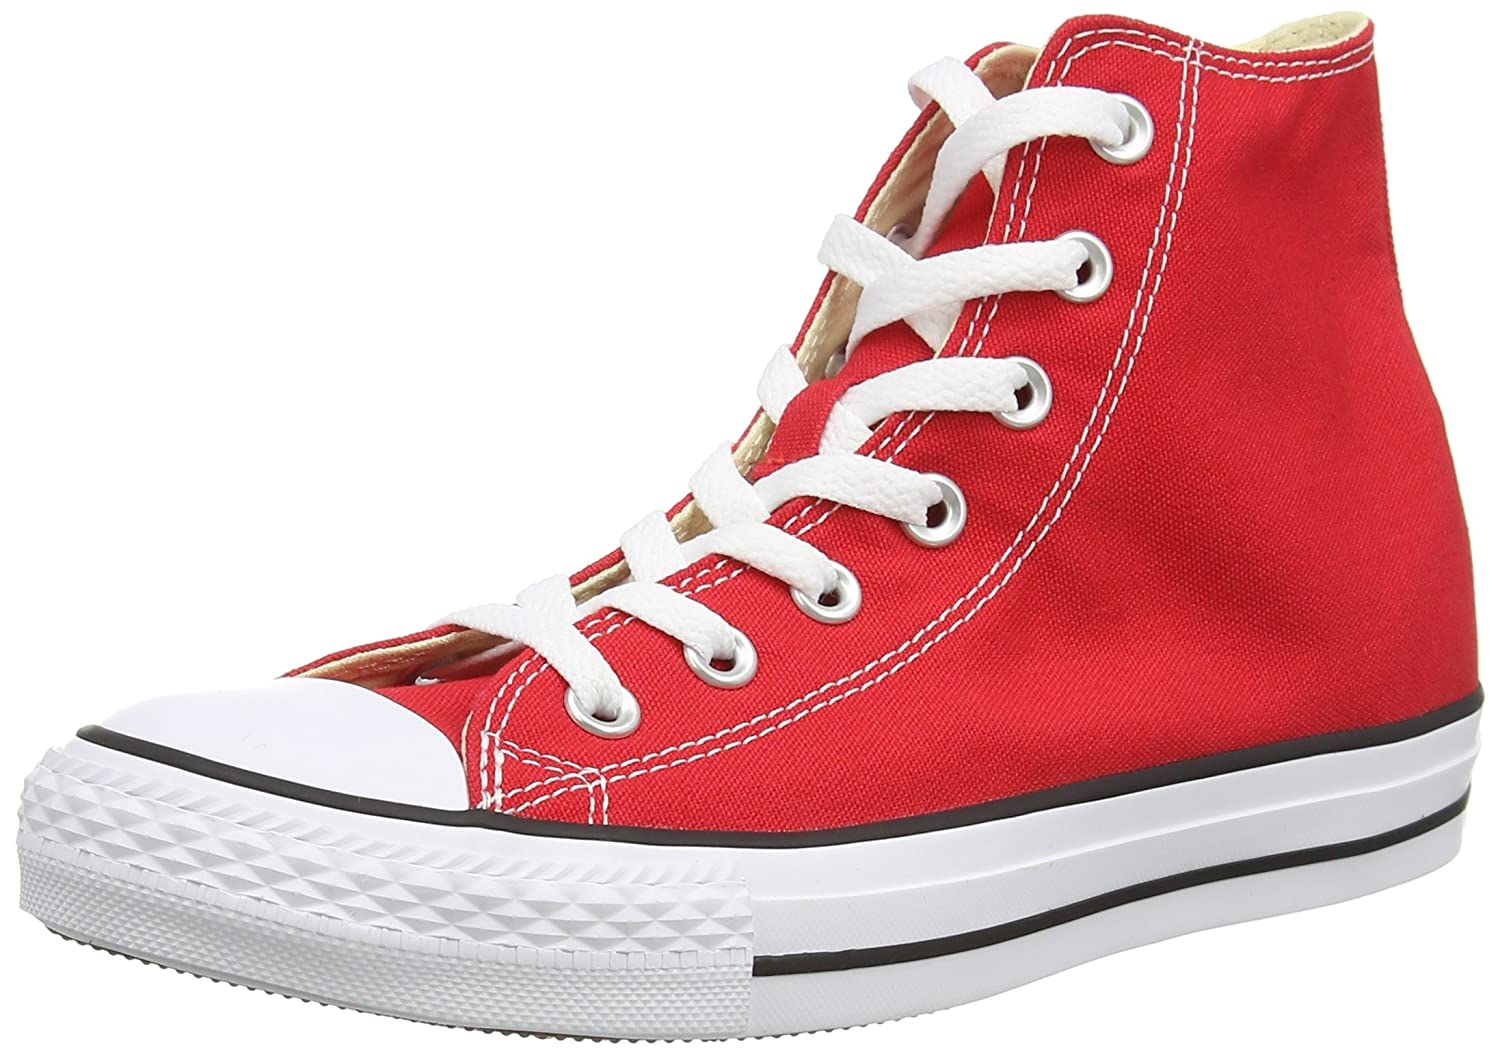 Converse Unisex Chuck Taylor All-Star High-Top Casual Sneakers in Classic Style and Color and Durable Canvas Uppers B002VSML8I 10.5 B(M) US Women / 8.5 D(M) US Men|Red